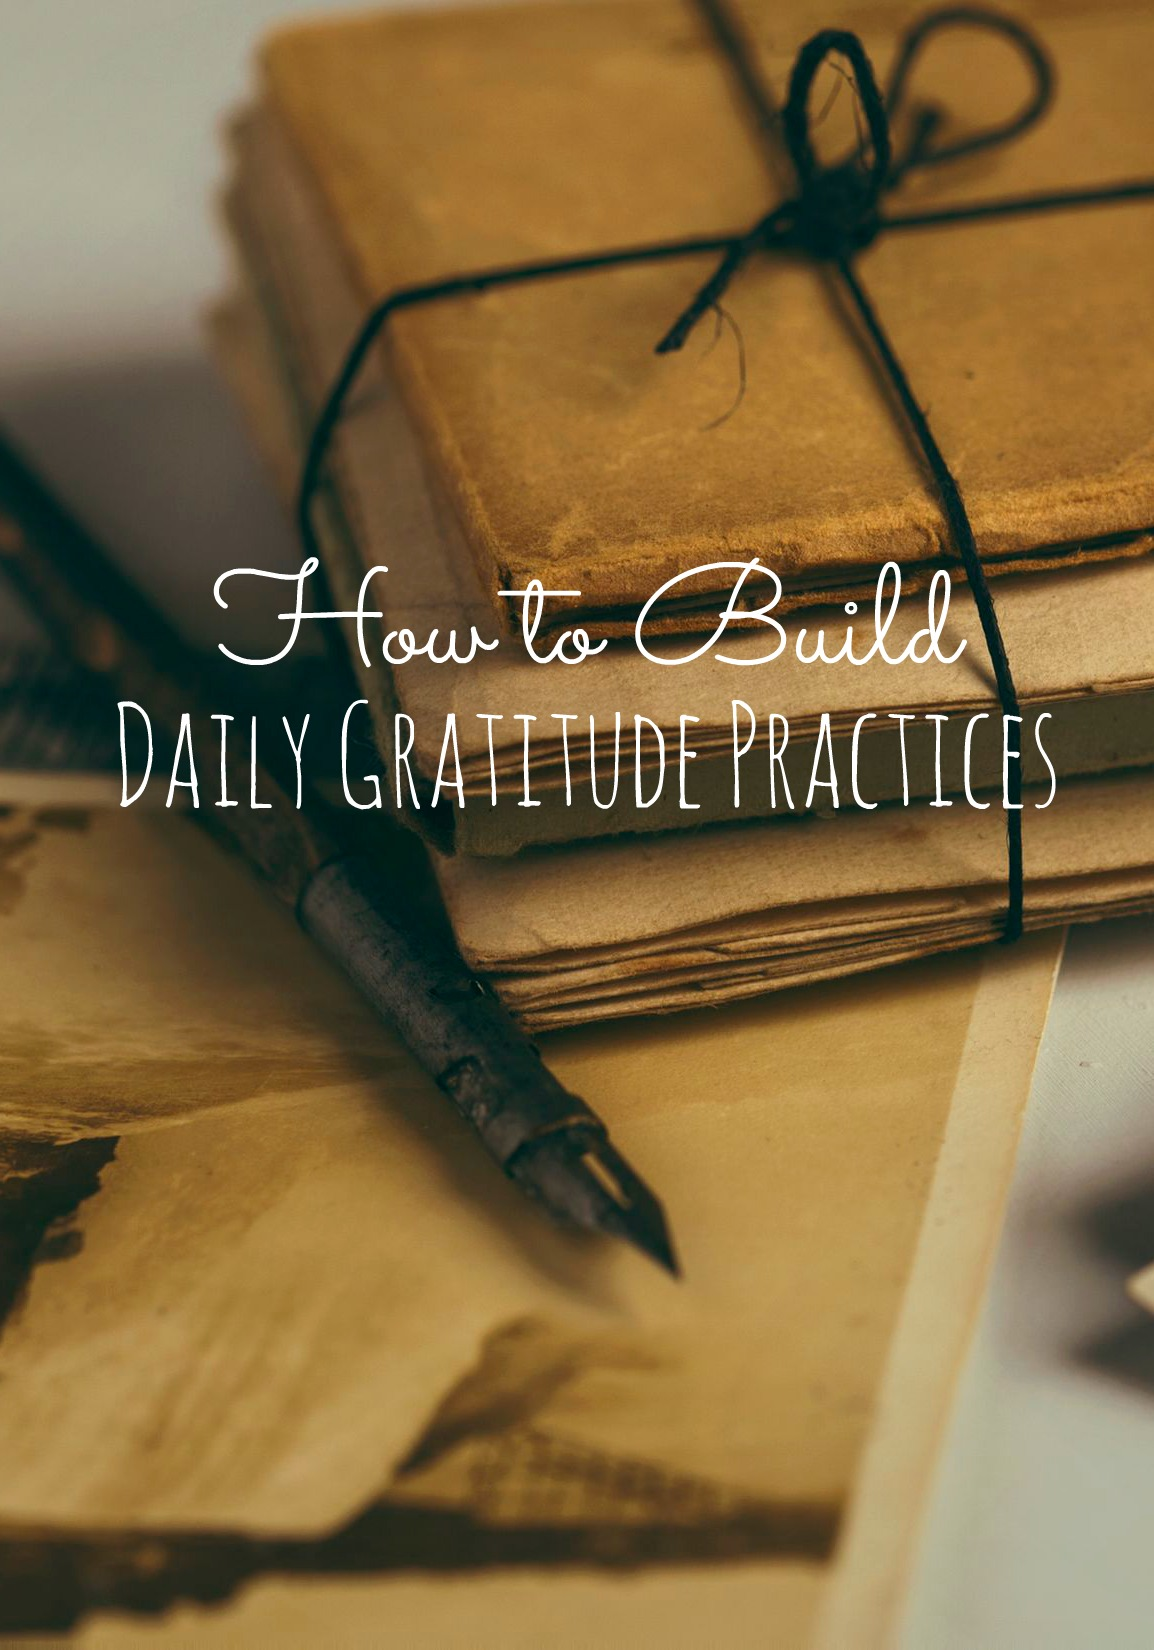 how to build daily gratitude practices